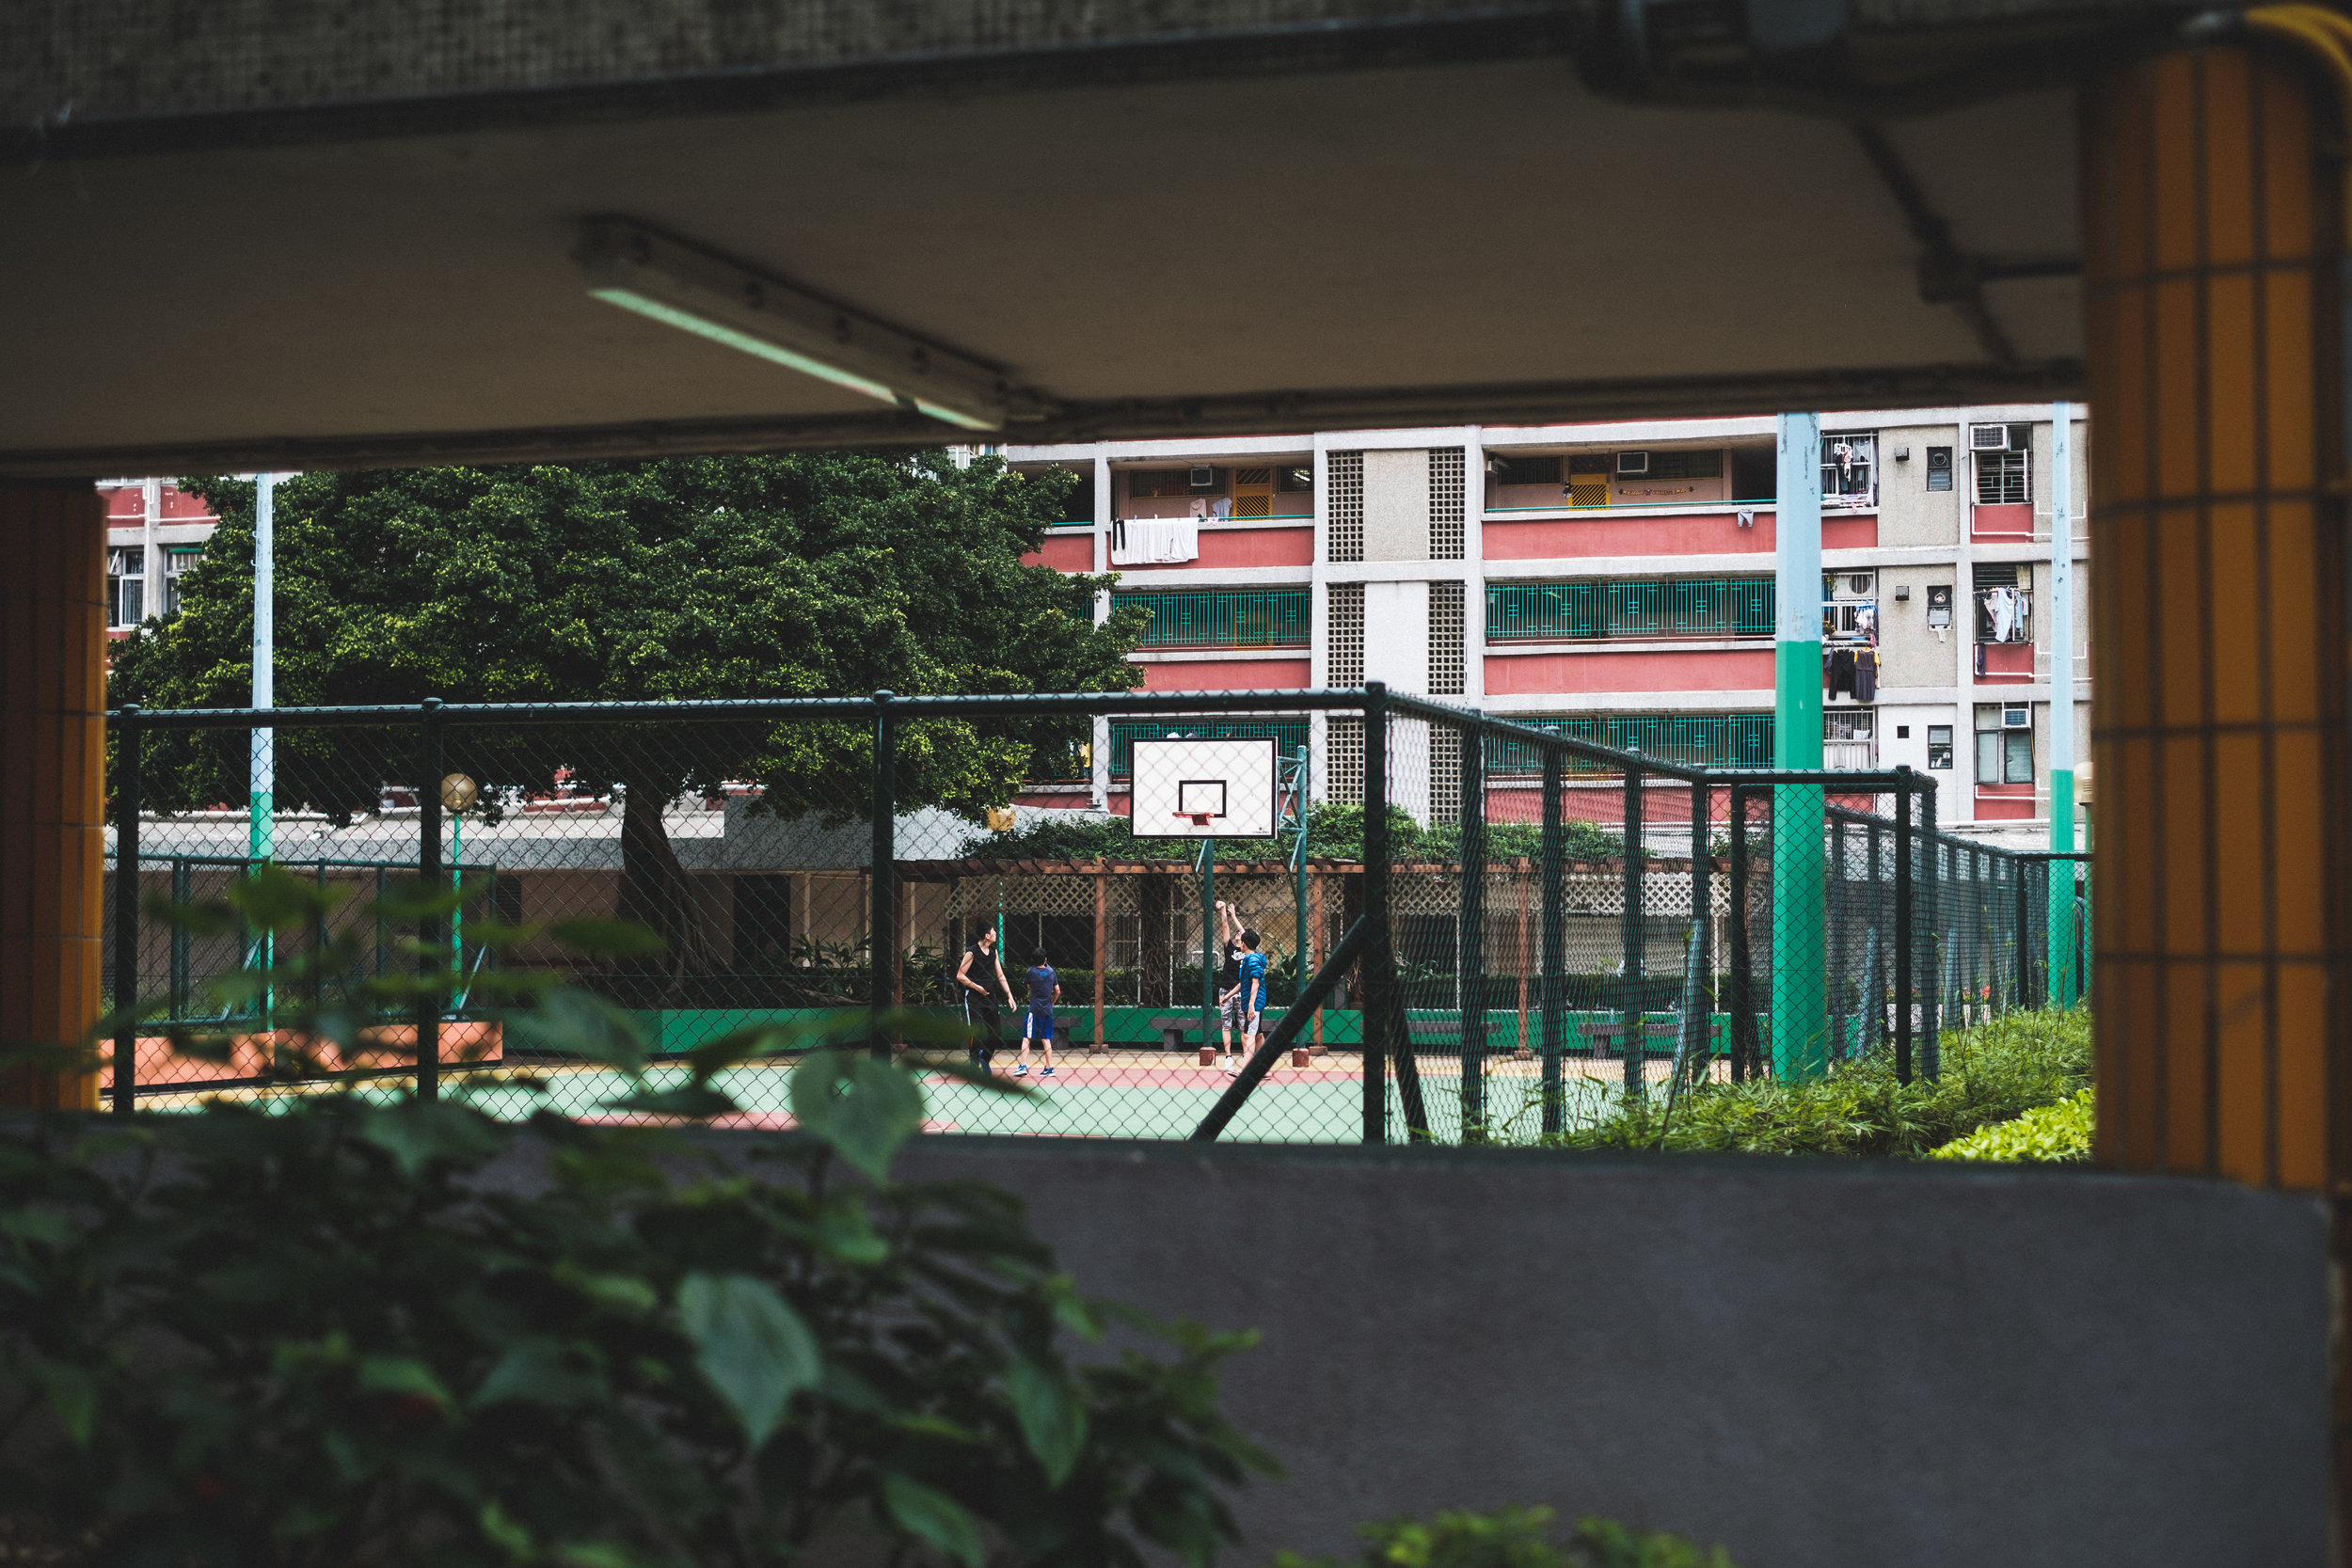 A group of young boys are having a game of basketball on city court in Kowloon Hong Kong residential area.